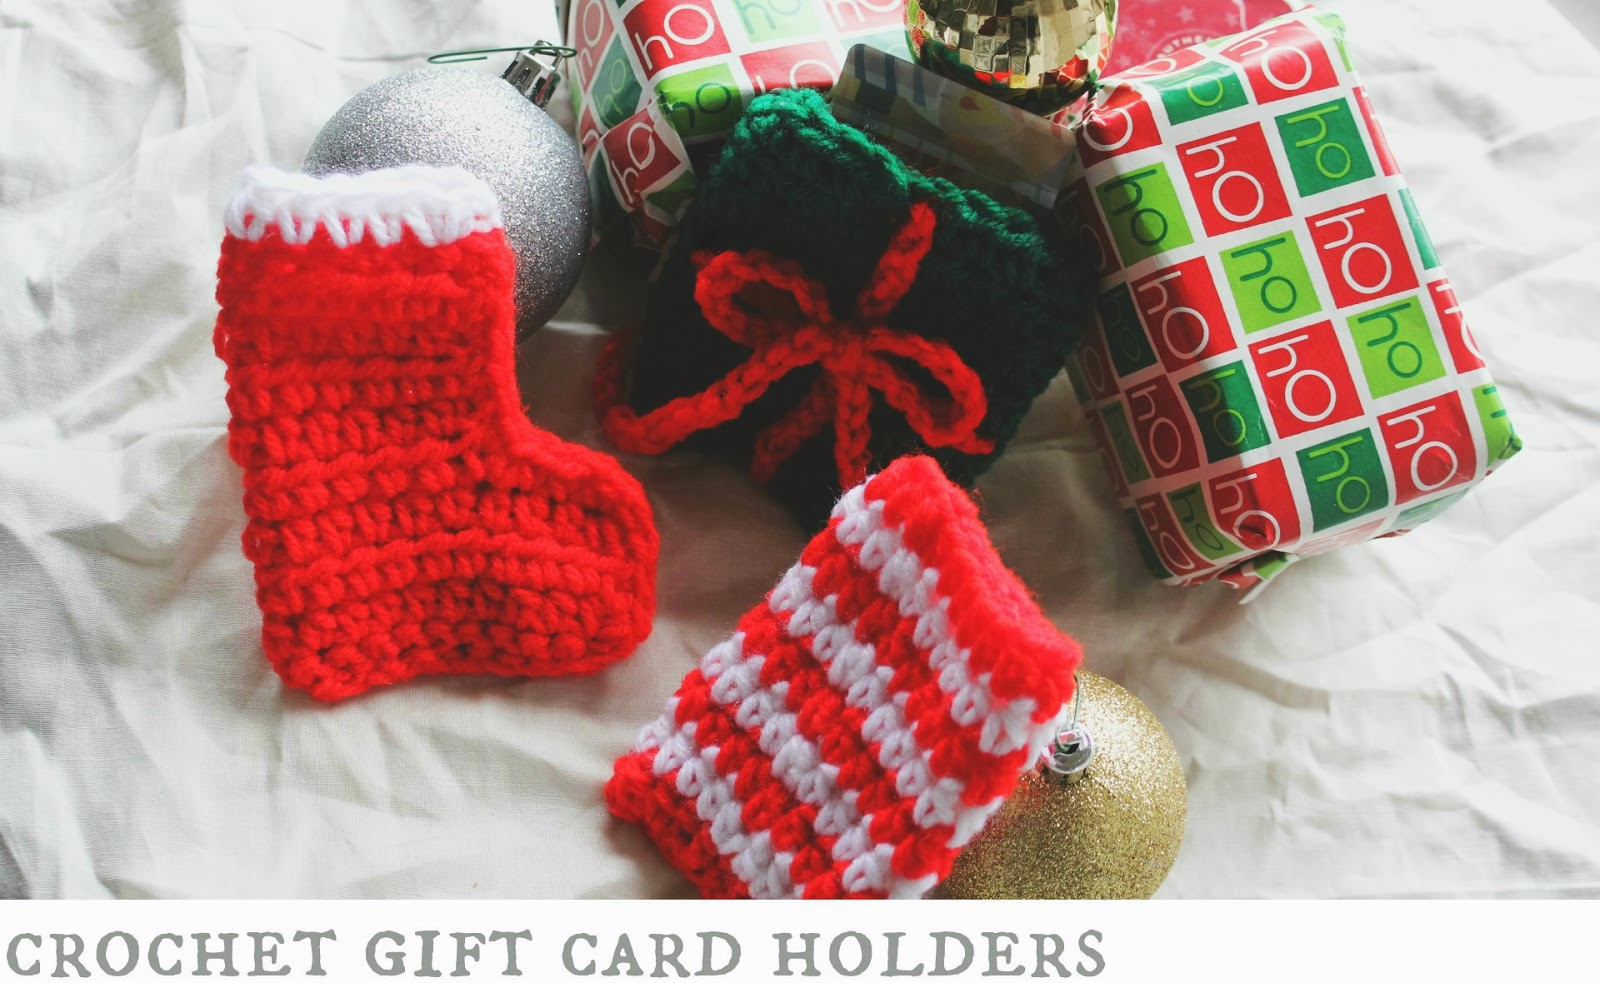 the dream crochet blog.: DIY: Crochet Gift Card Holders.